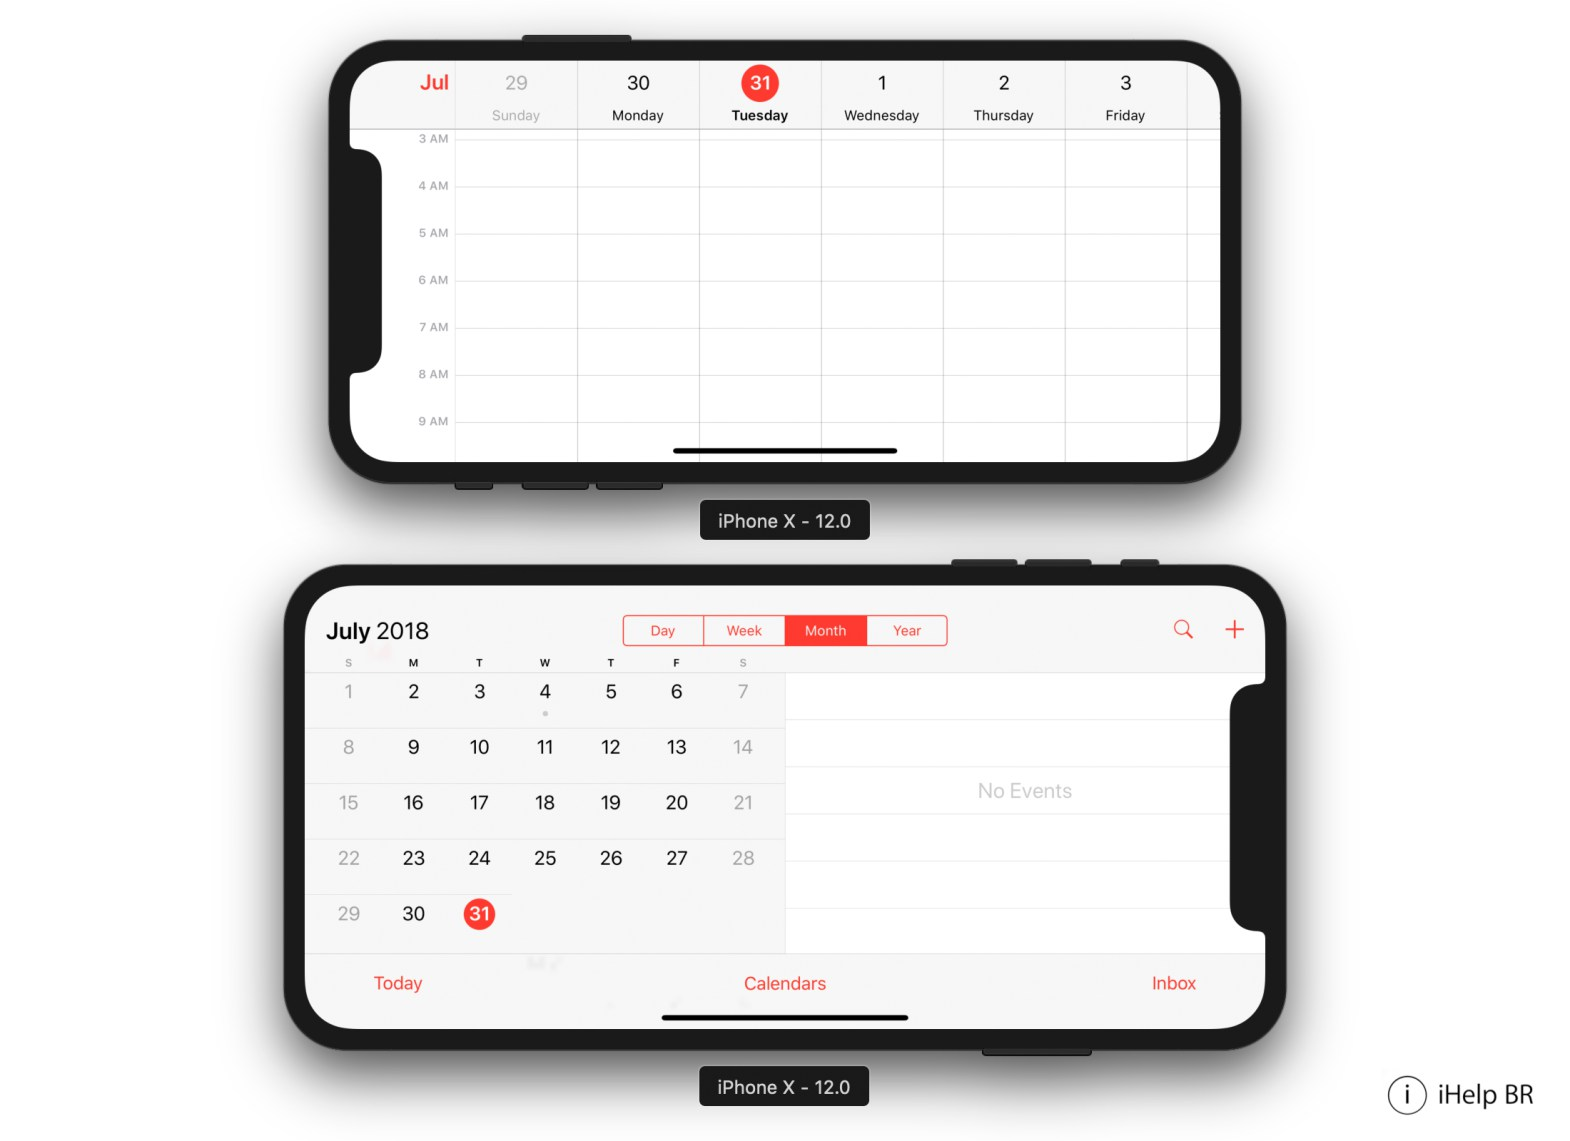 Calendario iPhone X Vs iPhone X plus horizontal